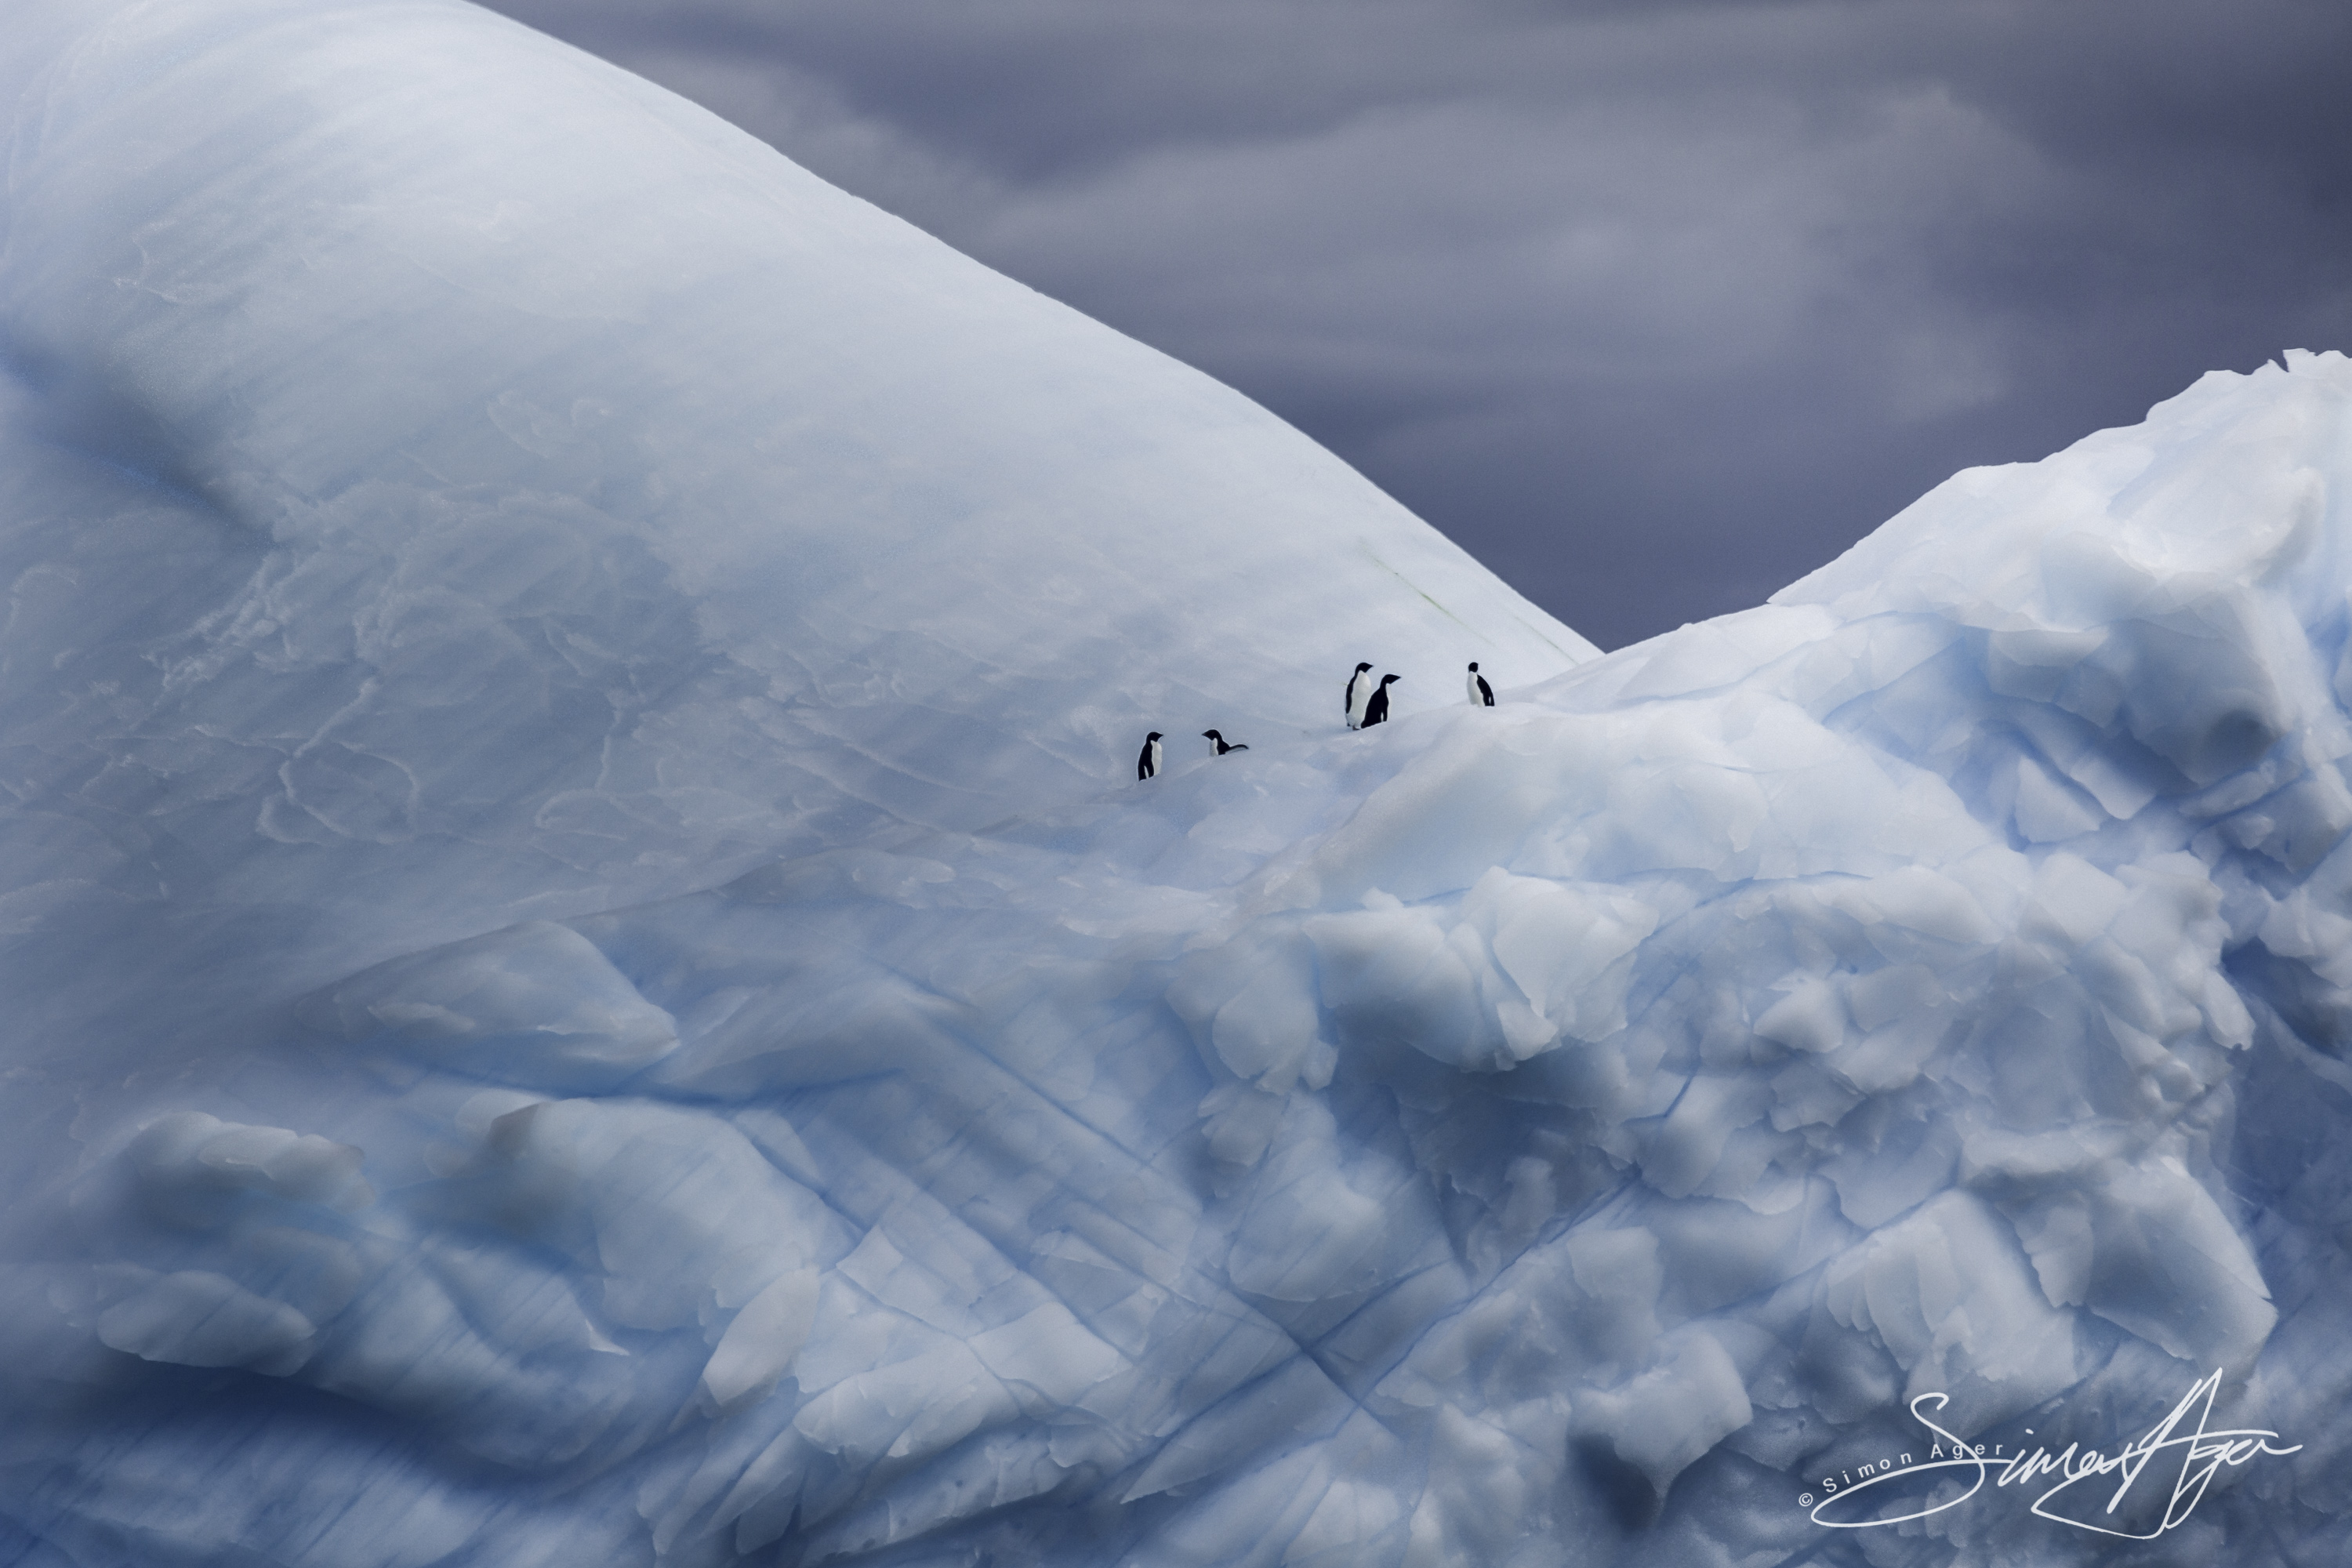 170212-SA-Adelie-Penguins-on-ice-001-6828